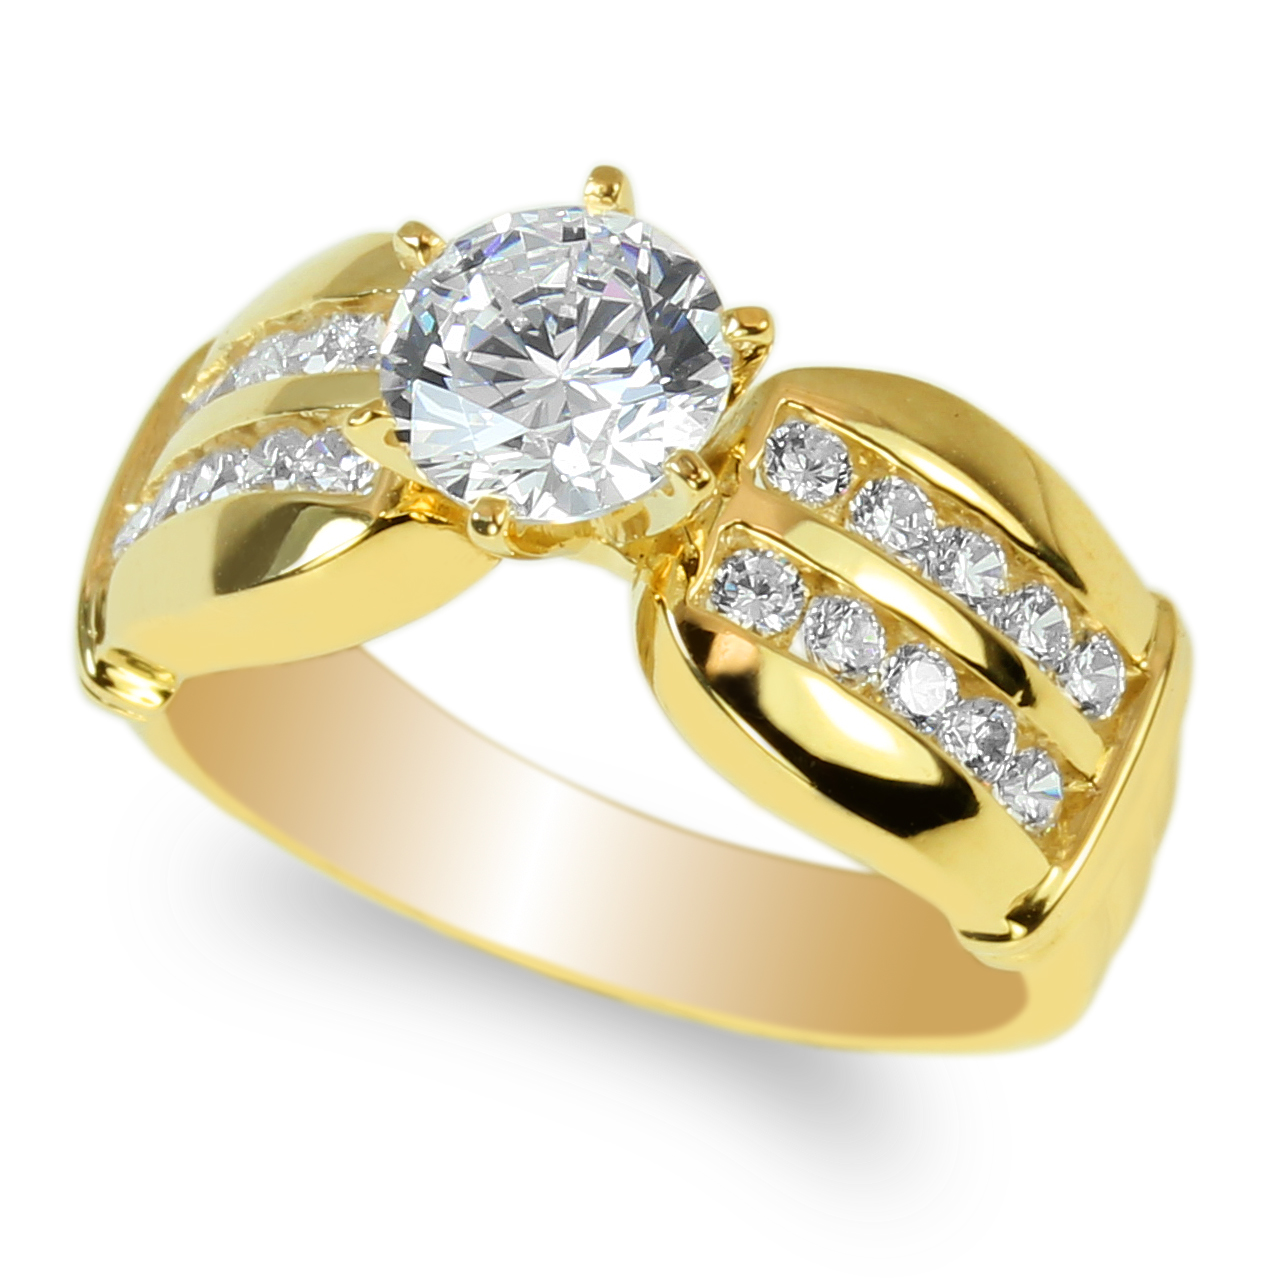 JamesJenny Ladies 10K Yellow Gold 1.0ct Round CZ Unique Engagement Solitaire Ring Size 4-10